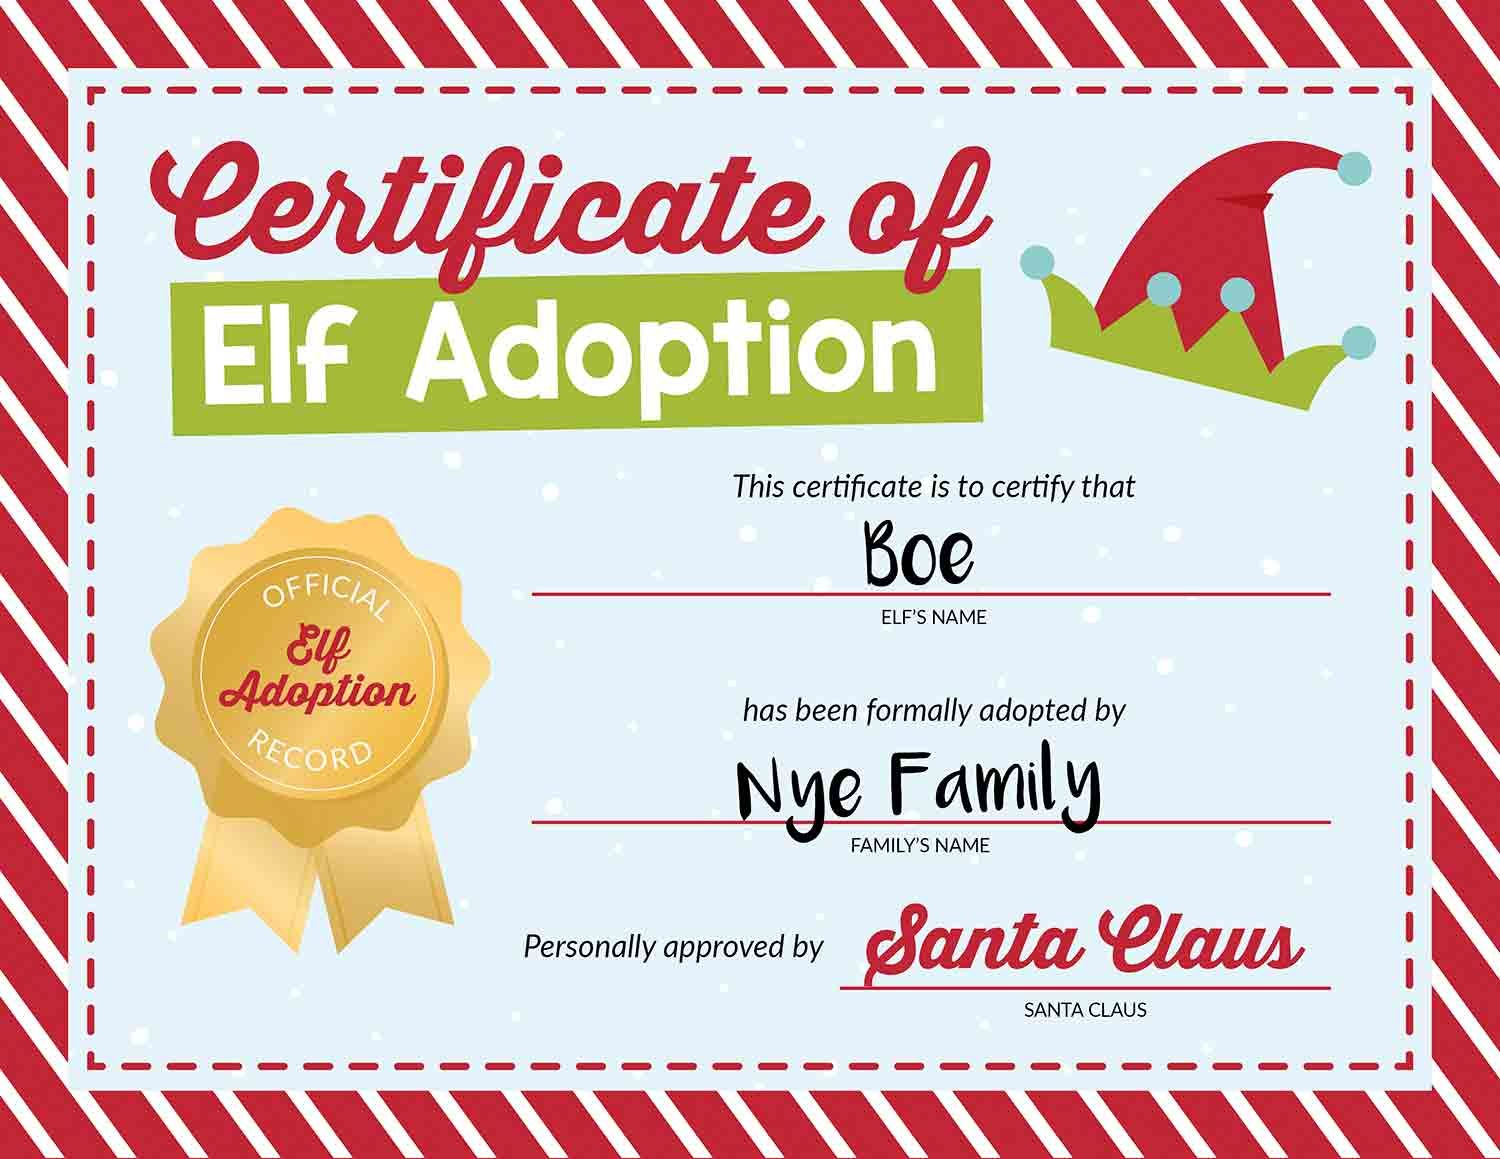 50 Of The Best Elf On The Shelf Names Free Printables I Heart Naptime Elf On The Shelf Elf On The Self Adoption Certificate